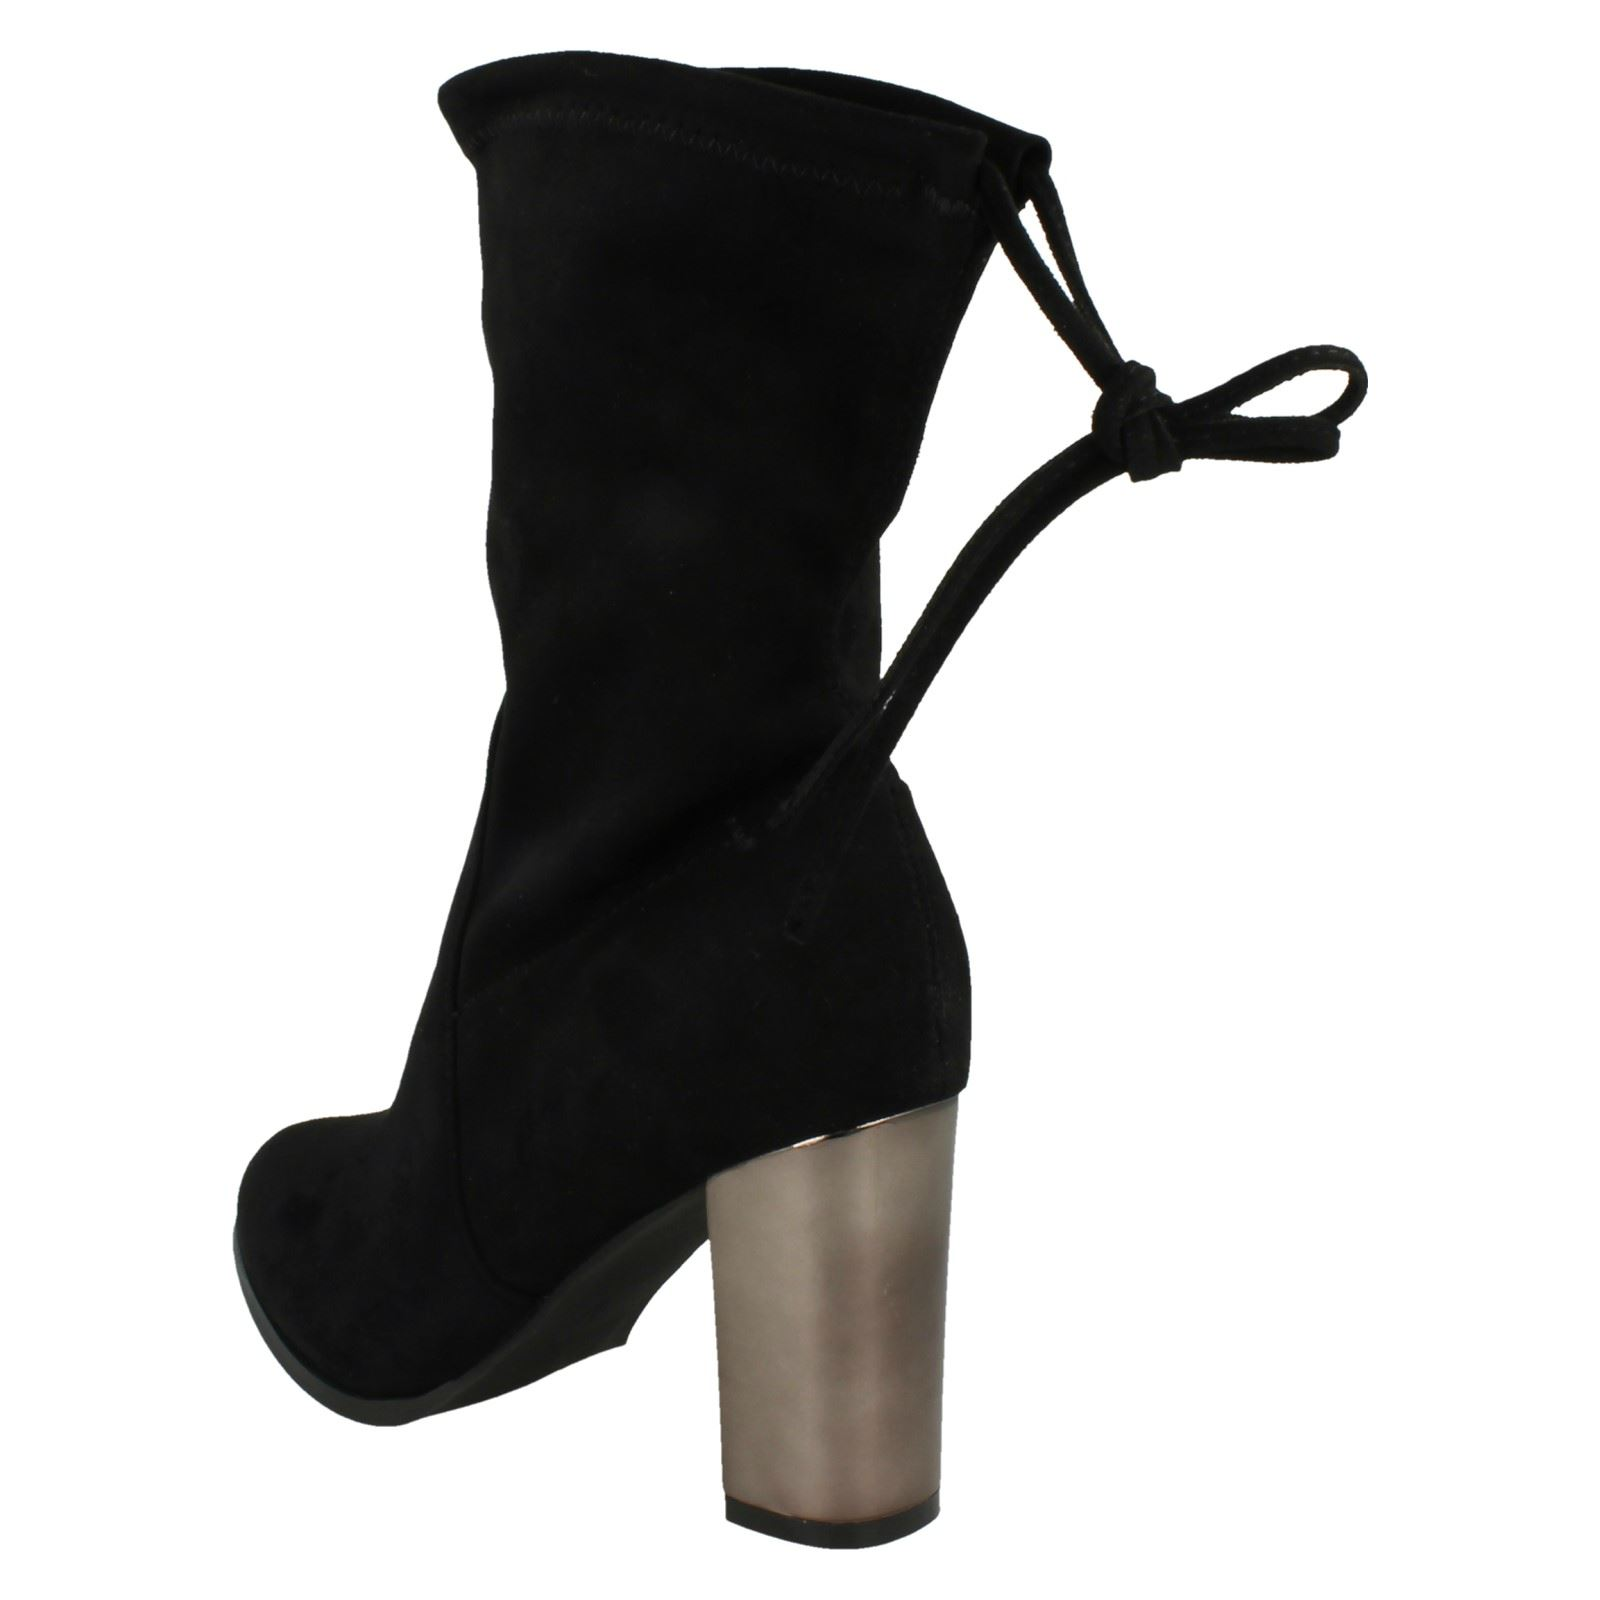 27ca3e3b40d8 Ladies Spot on Style 687 Stretchy Mid Calf Length BOOTS Black 5 UK  Standard. About this product. Picture 1 of 10  Picture 2 of 10  Picture 3  of 10  Picture ...